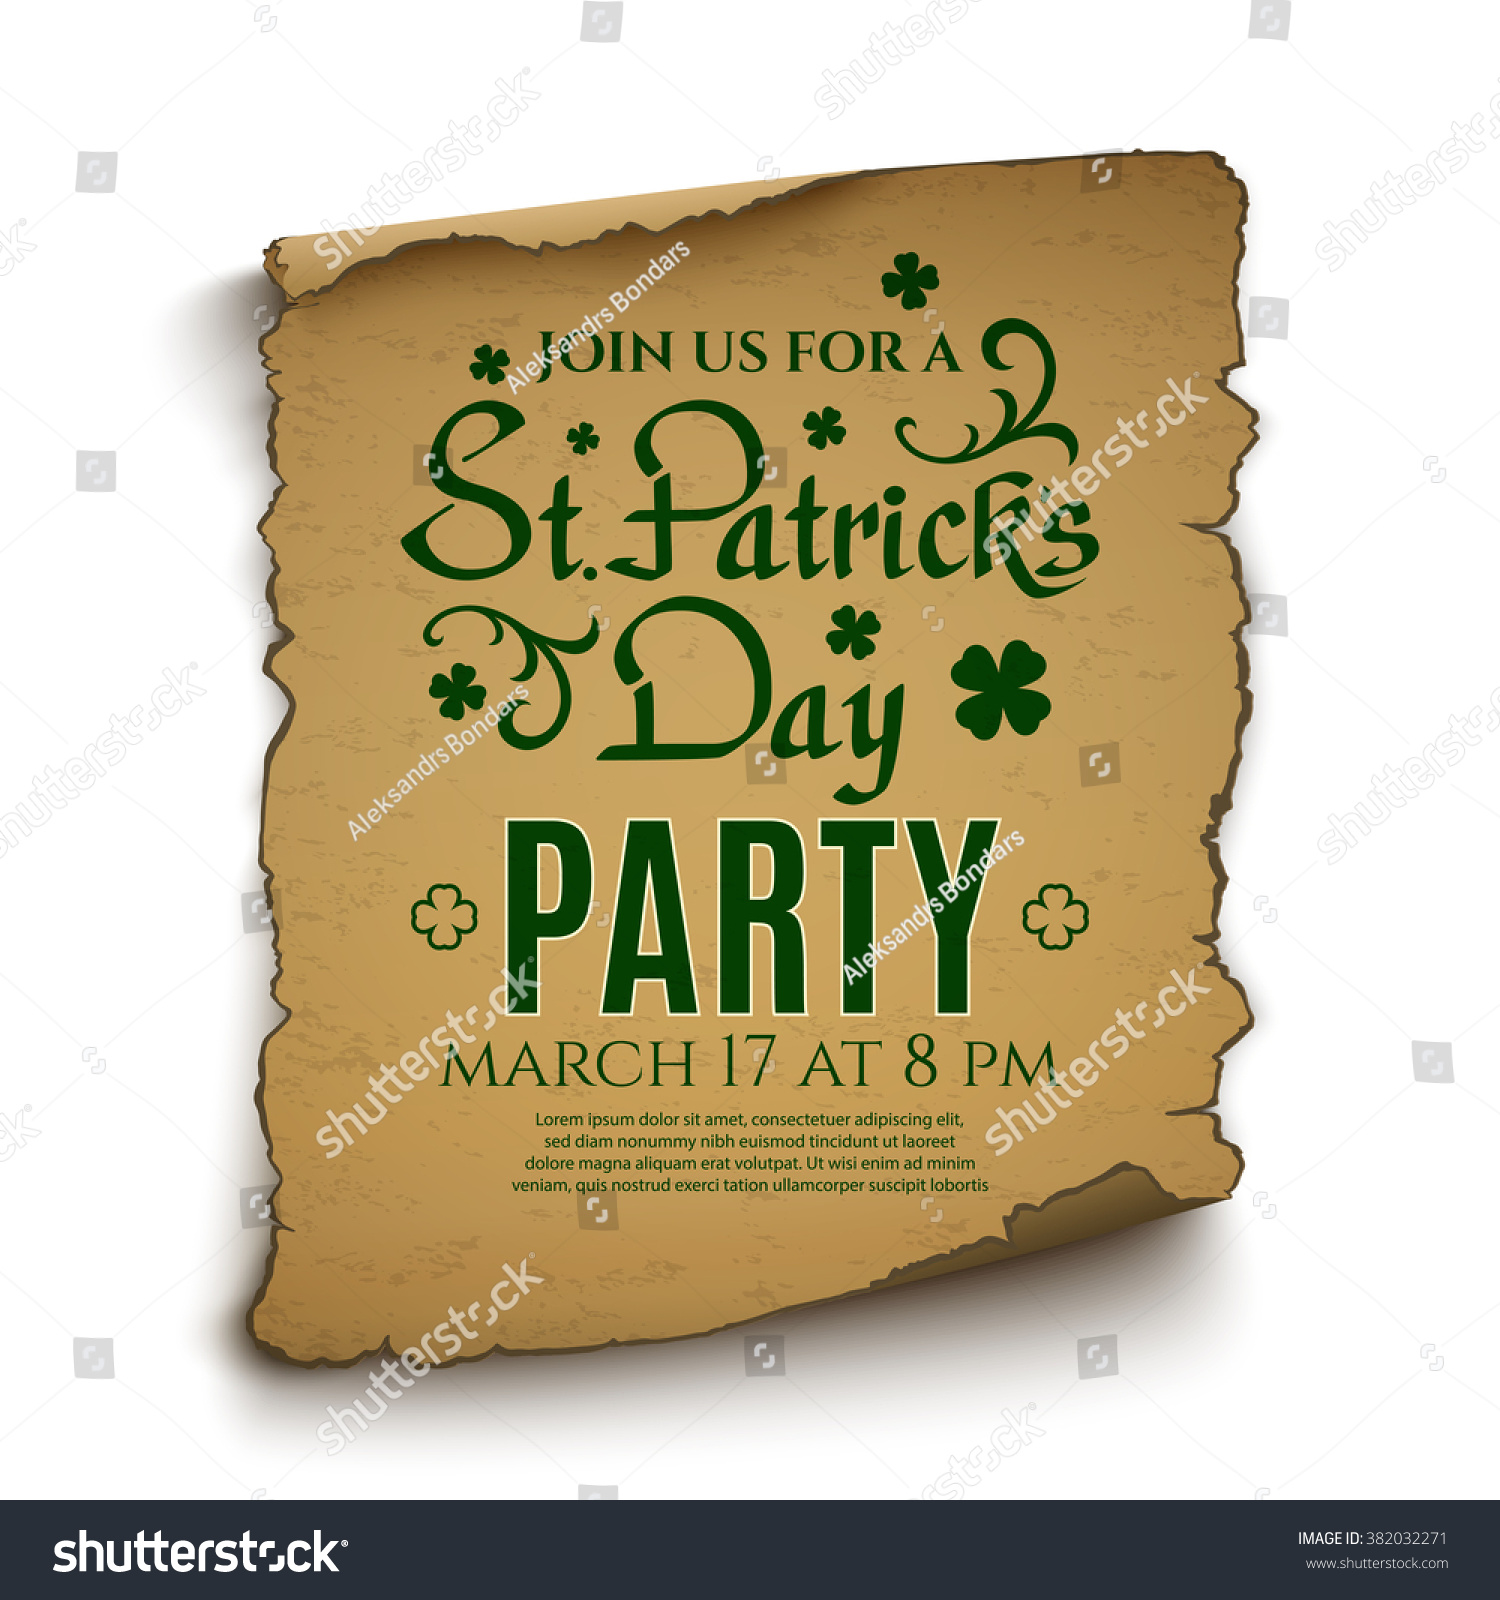 St patricks day party invitation poster stock vector 382032271 st patricks day party invitation poster stock vector 382032271 shutterstock stopboris Image collections